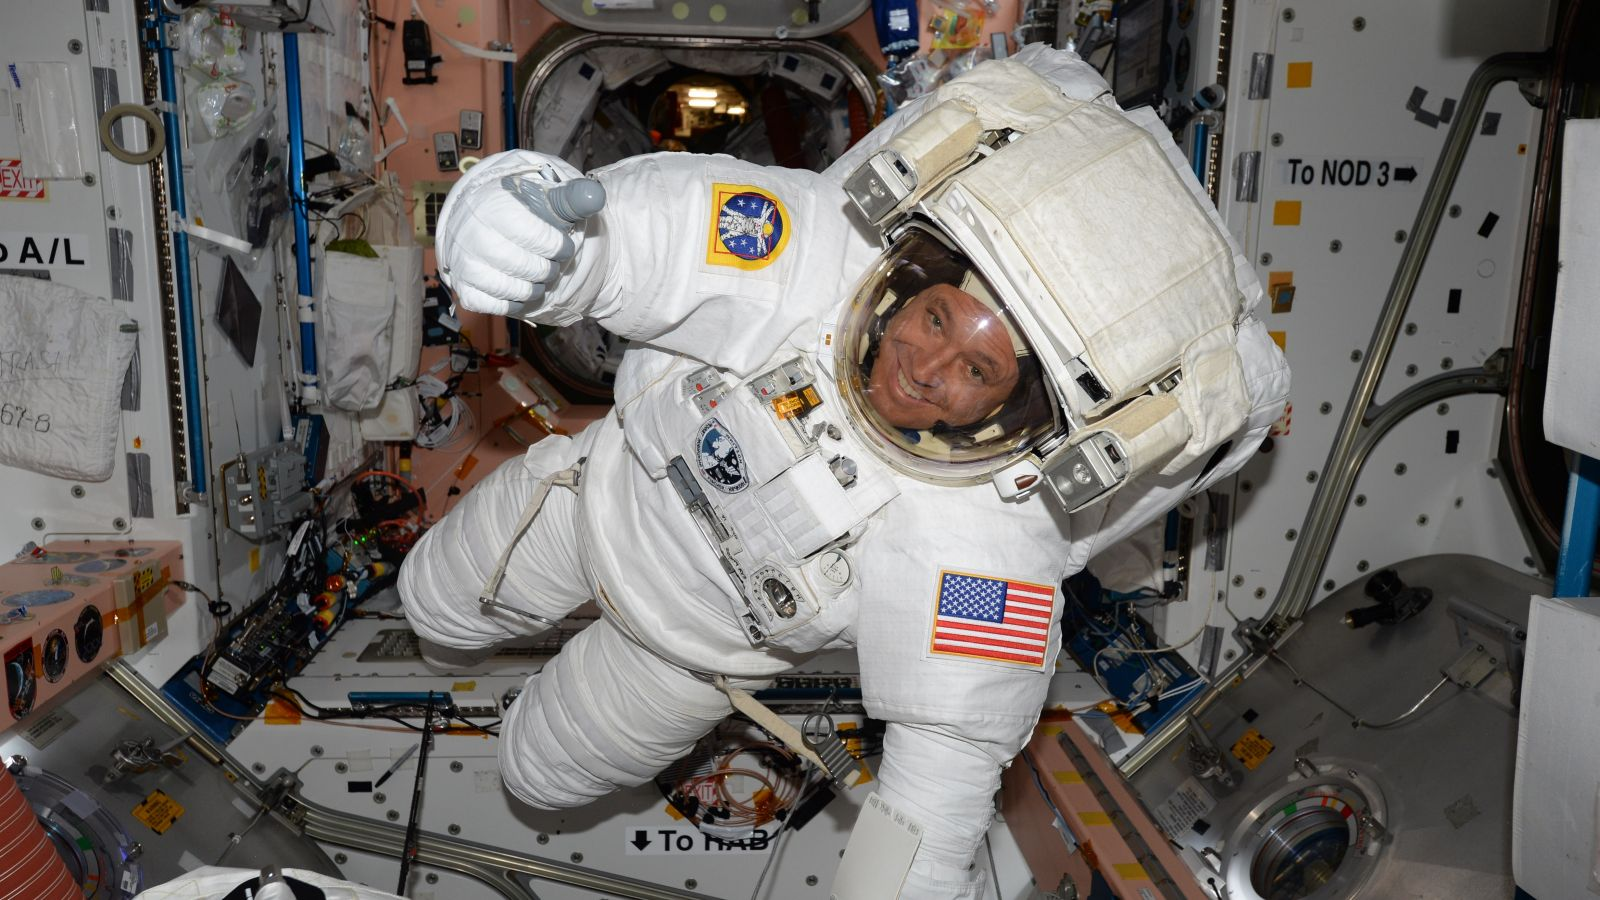 'Awesomesauce,' proclaims United States  astronaut on historic spacewalk outside ISS